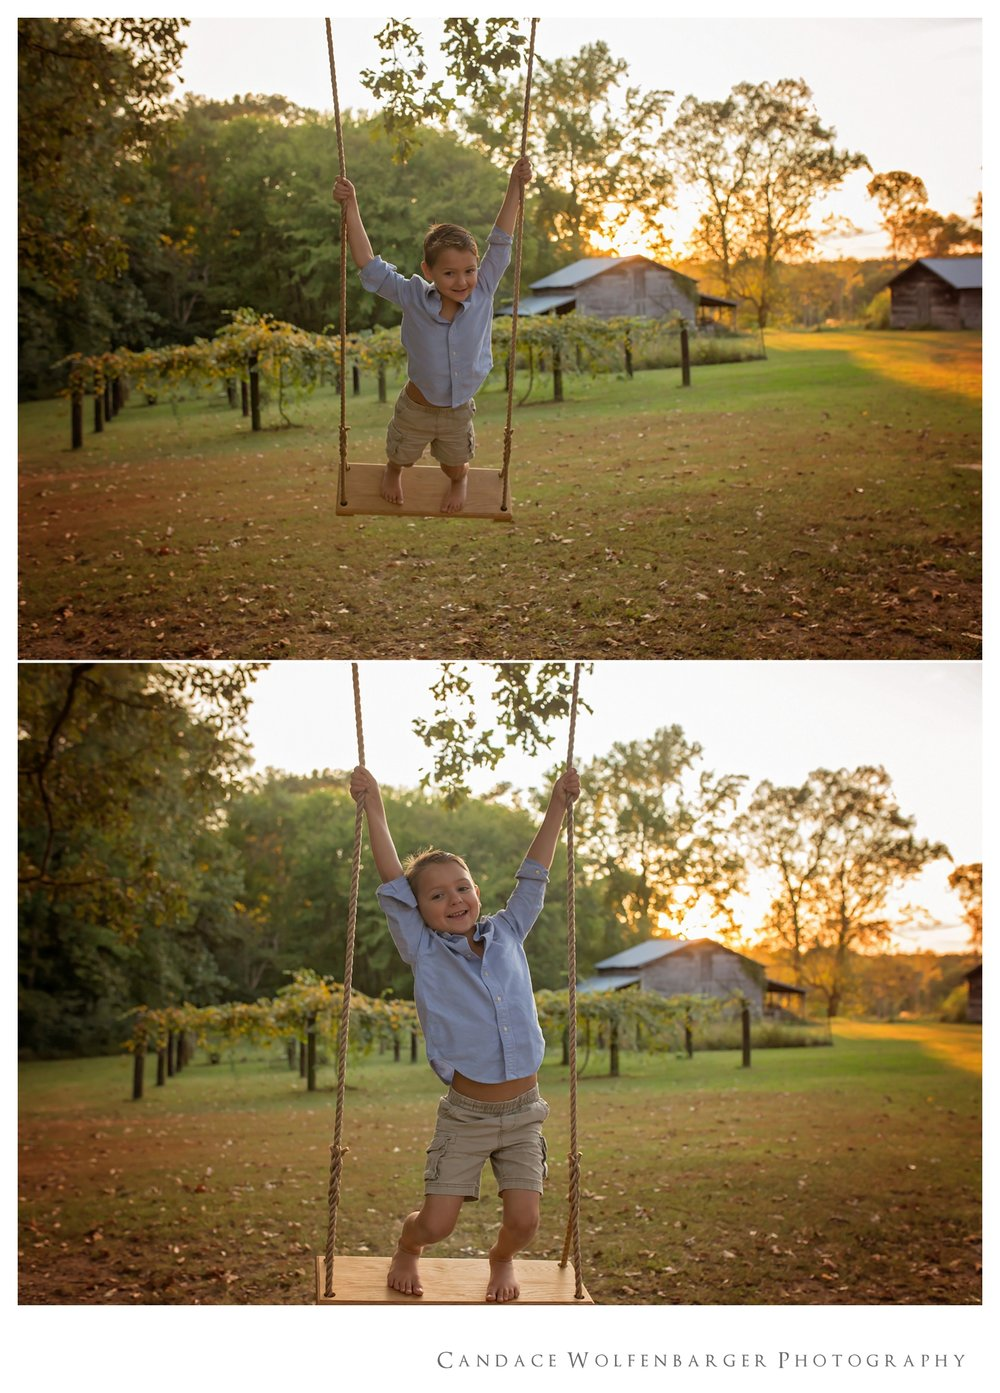 Naaman Caroline Swing Session Candace Wolfenbarger Sanford NC Childrens Photographer 7.jpg